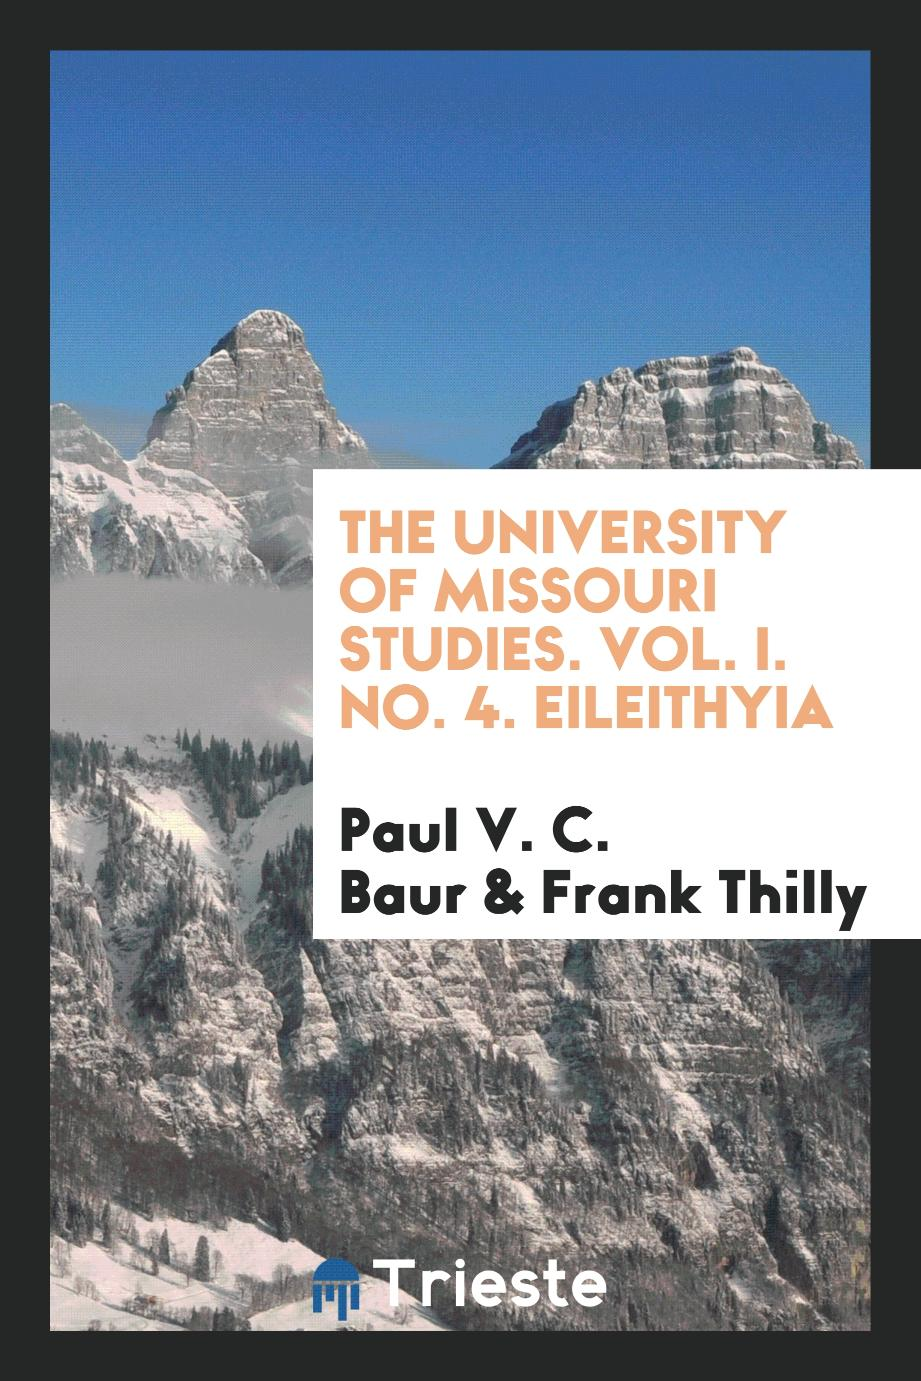 The University of Missouri Studies. Vol. I. No. 4. Eileithyia